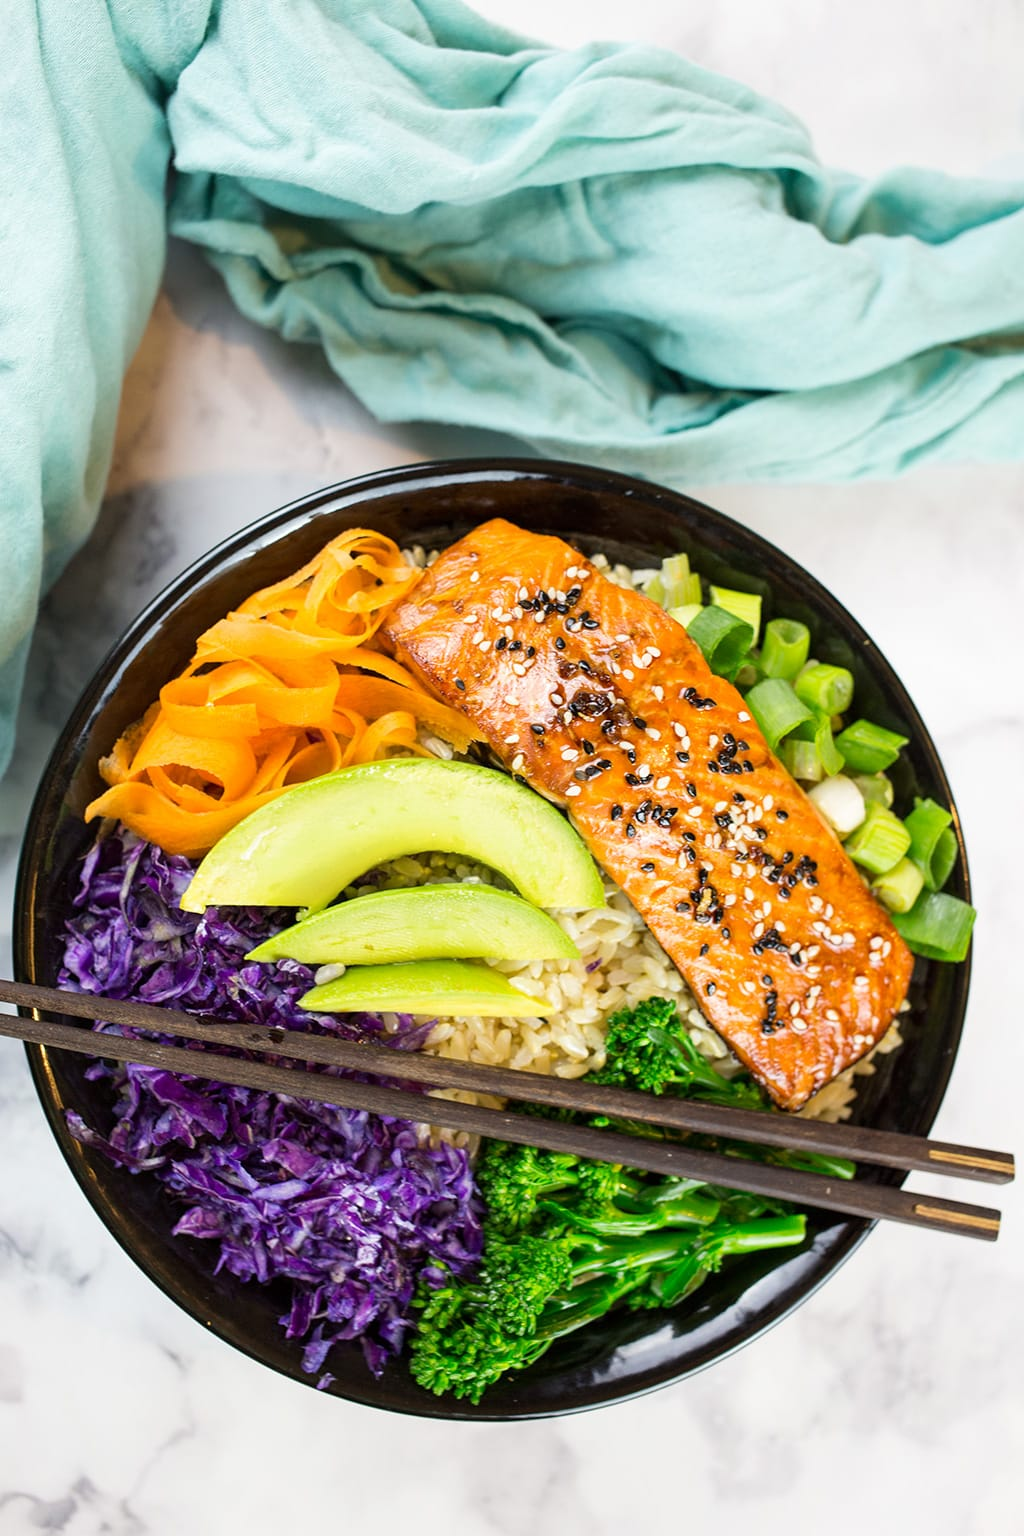 Teriyaki Salmon Bowl Birds Eye View in black bowl with green cloth in the background.